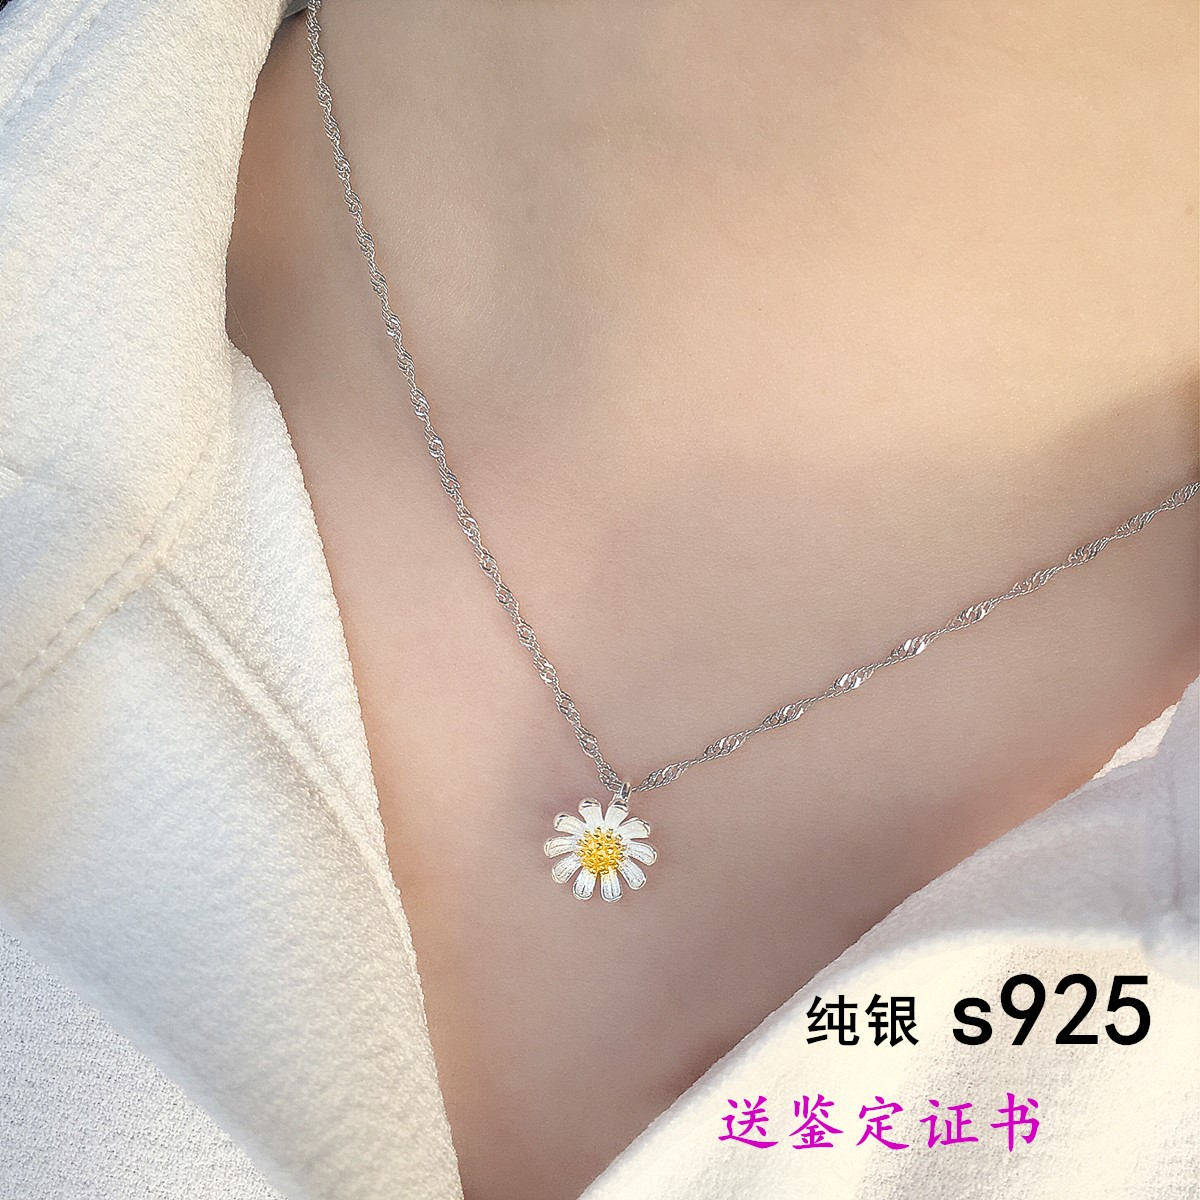 S925 Sterling Silver Necklace sweet little Daisy Flower Pendant super fairy silver clavicle chain for Valentines Day